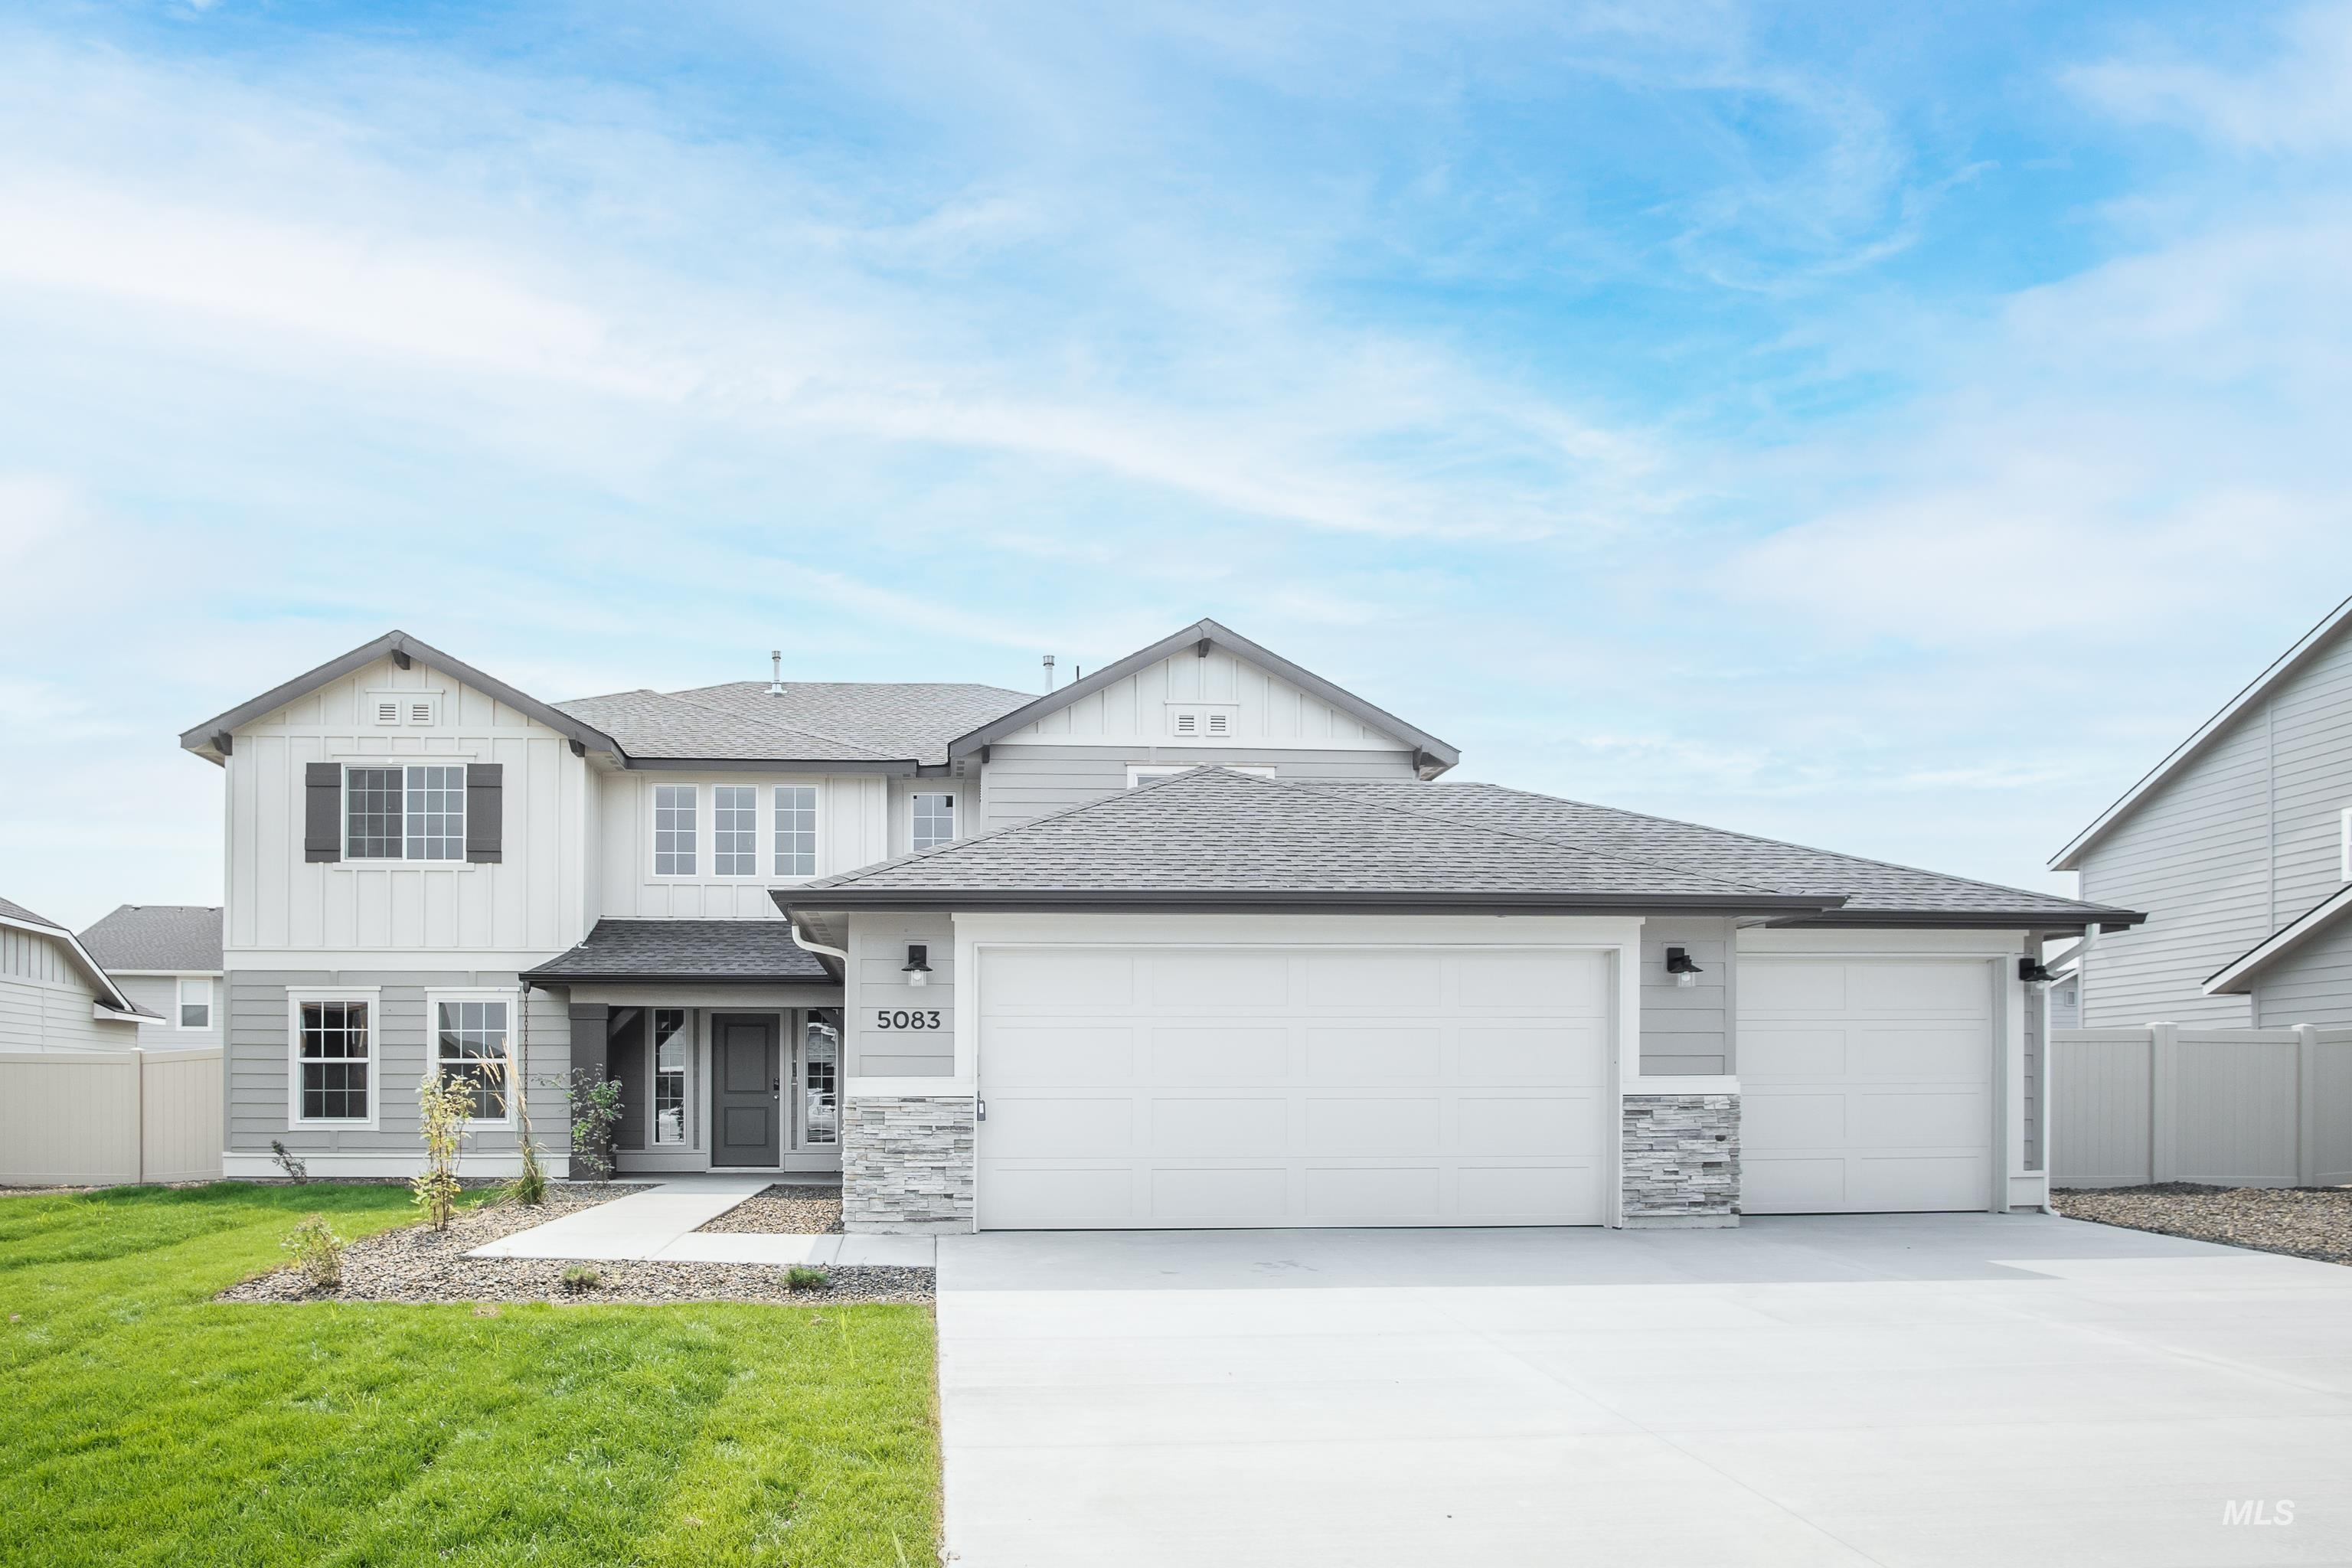 Get $20k with our CASH BOOM HOME PROMO NOW thru 9/30. Want to tour this home NOW? Get on-demand access with TOUR NOW. The Milano 3250 floor plan is grand! Relax in the great room or play in the upstairs loft. Master suite, separate soaker tub & shower, & a large walk-in closet. Full bath and bedroom downstairs. Price includes stainless kitchen appliances, quartz kitchen countertops, dual vanity, 3 car garage, and more! Corner lot.RCE-923 - Jordan Grubbs, Main: 208-504-6449, CBH Sales and Marketing, Main: 208-288-5560,